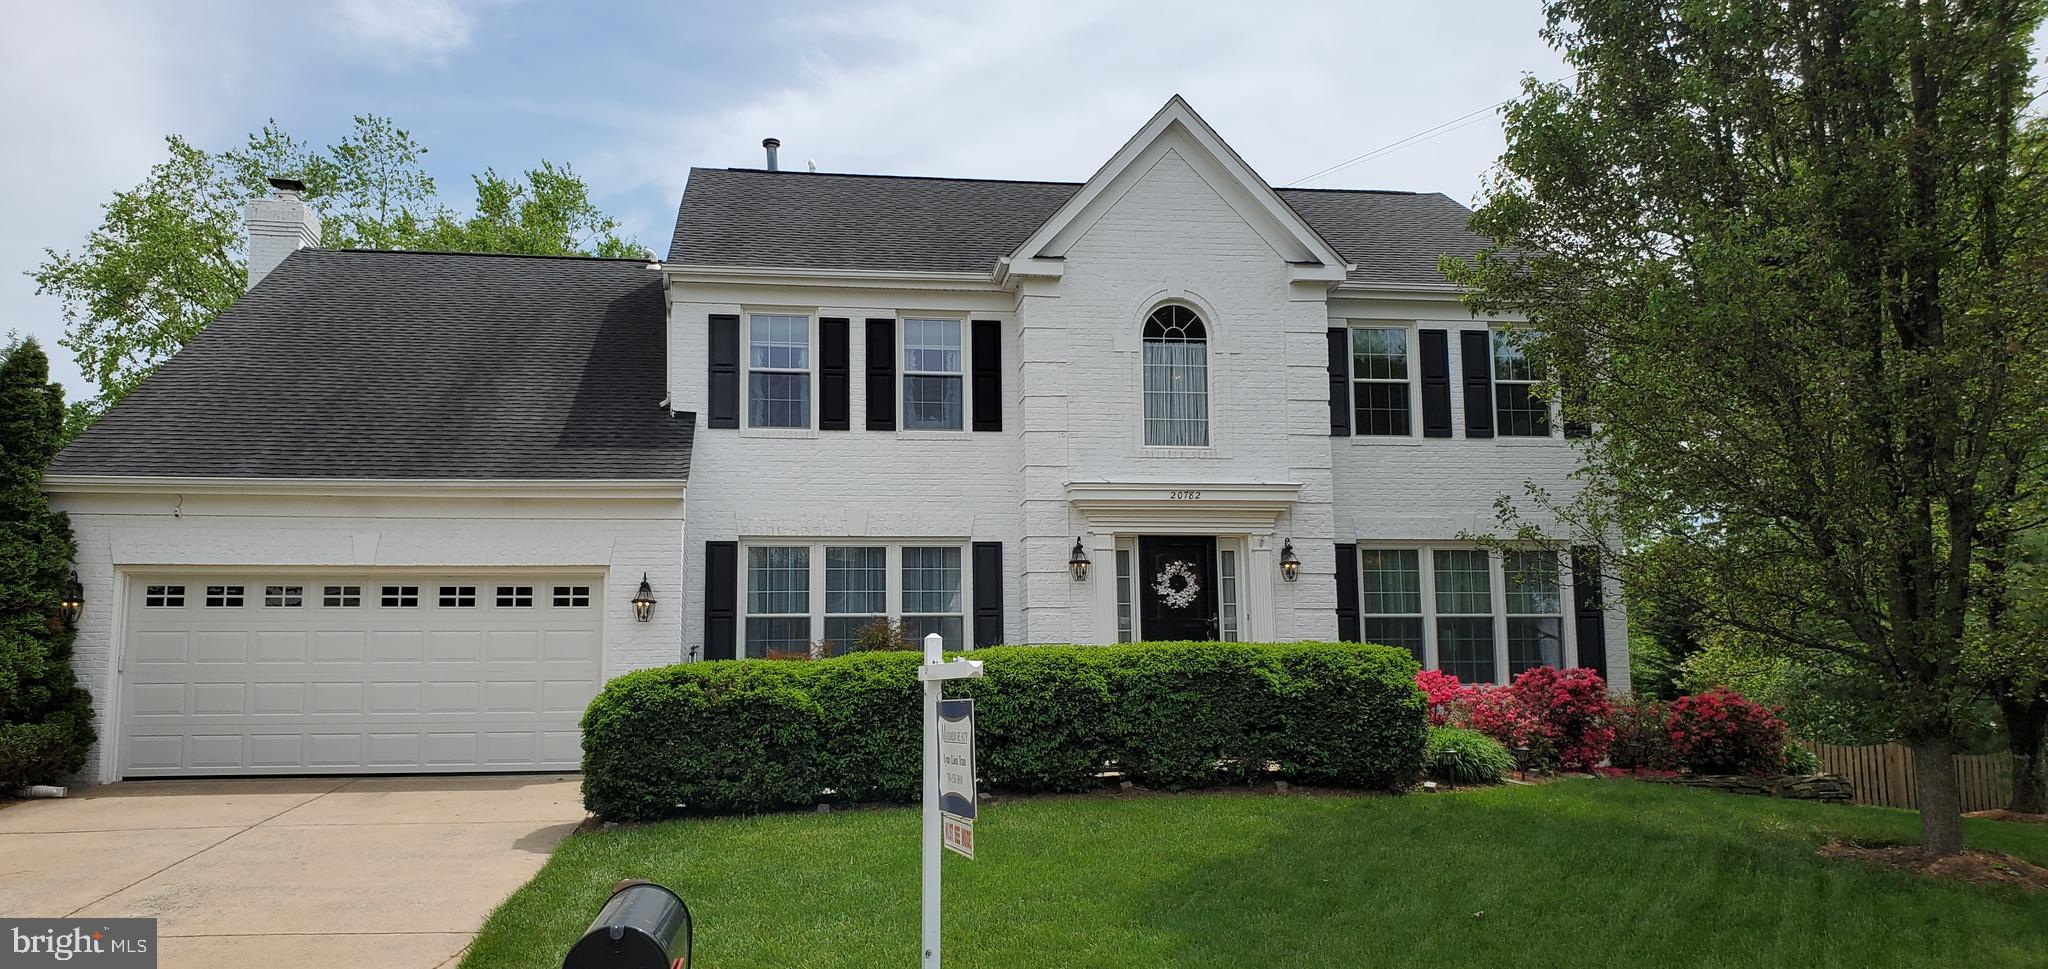 BEAUTIFUL COLONIAL HOME IN MODEL CONDITION - MUST SEE - 5 BR - 4.5BA - 2 CAR GARAGE - 2 FIREPLACES -